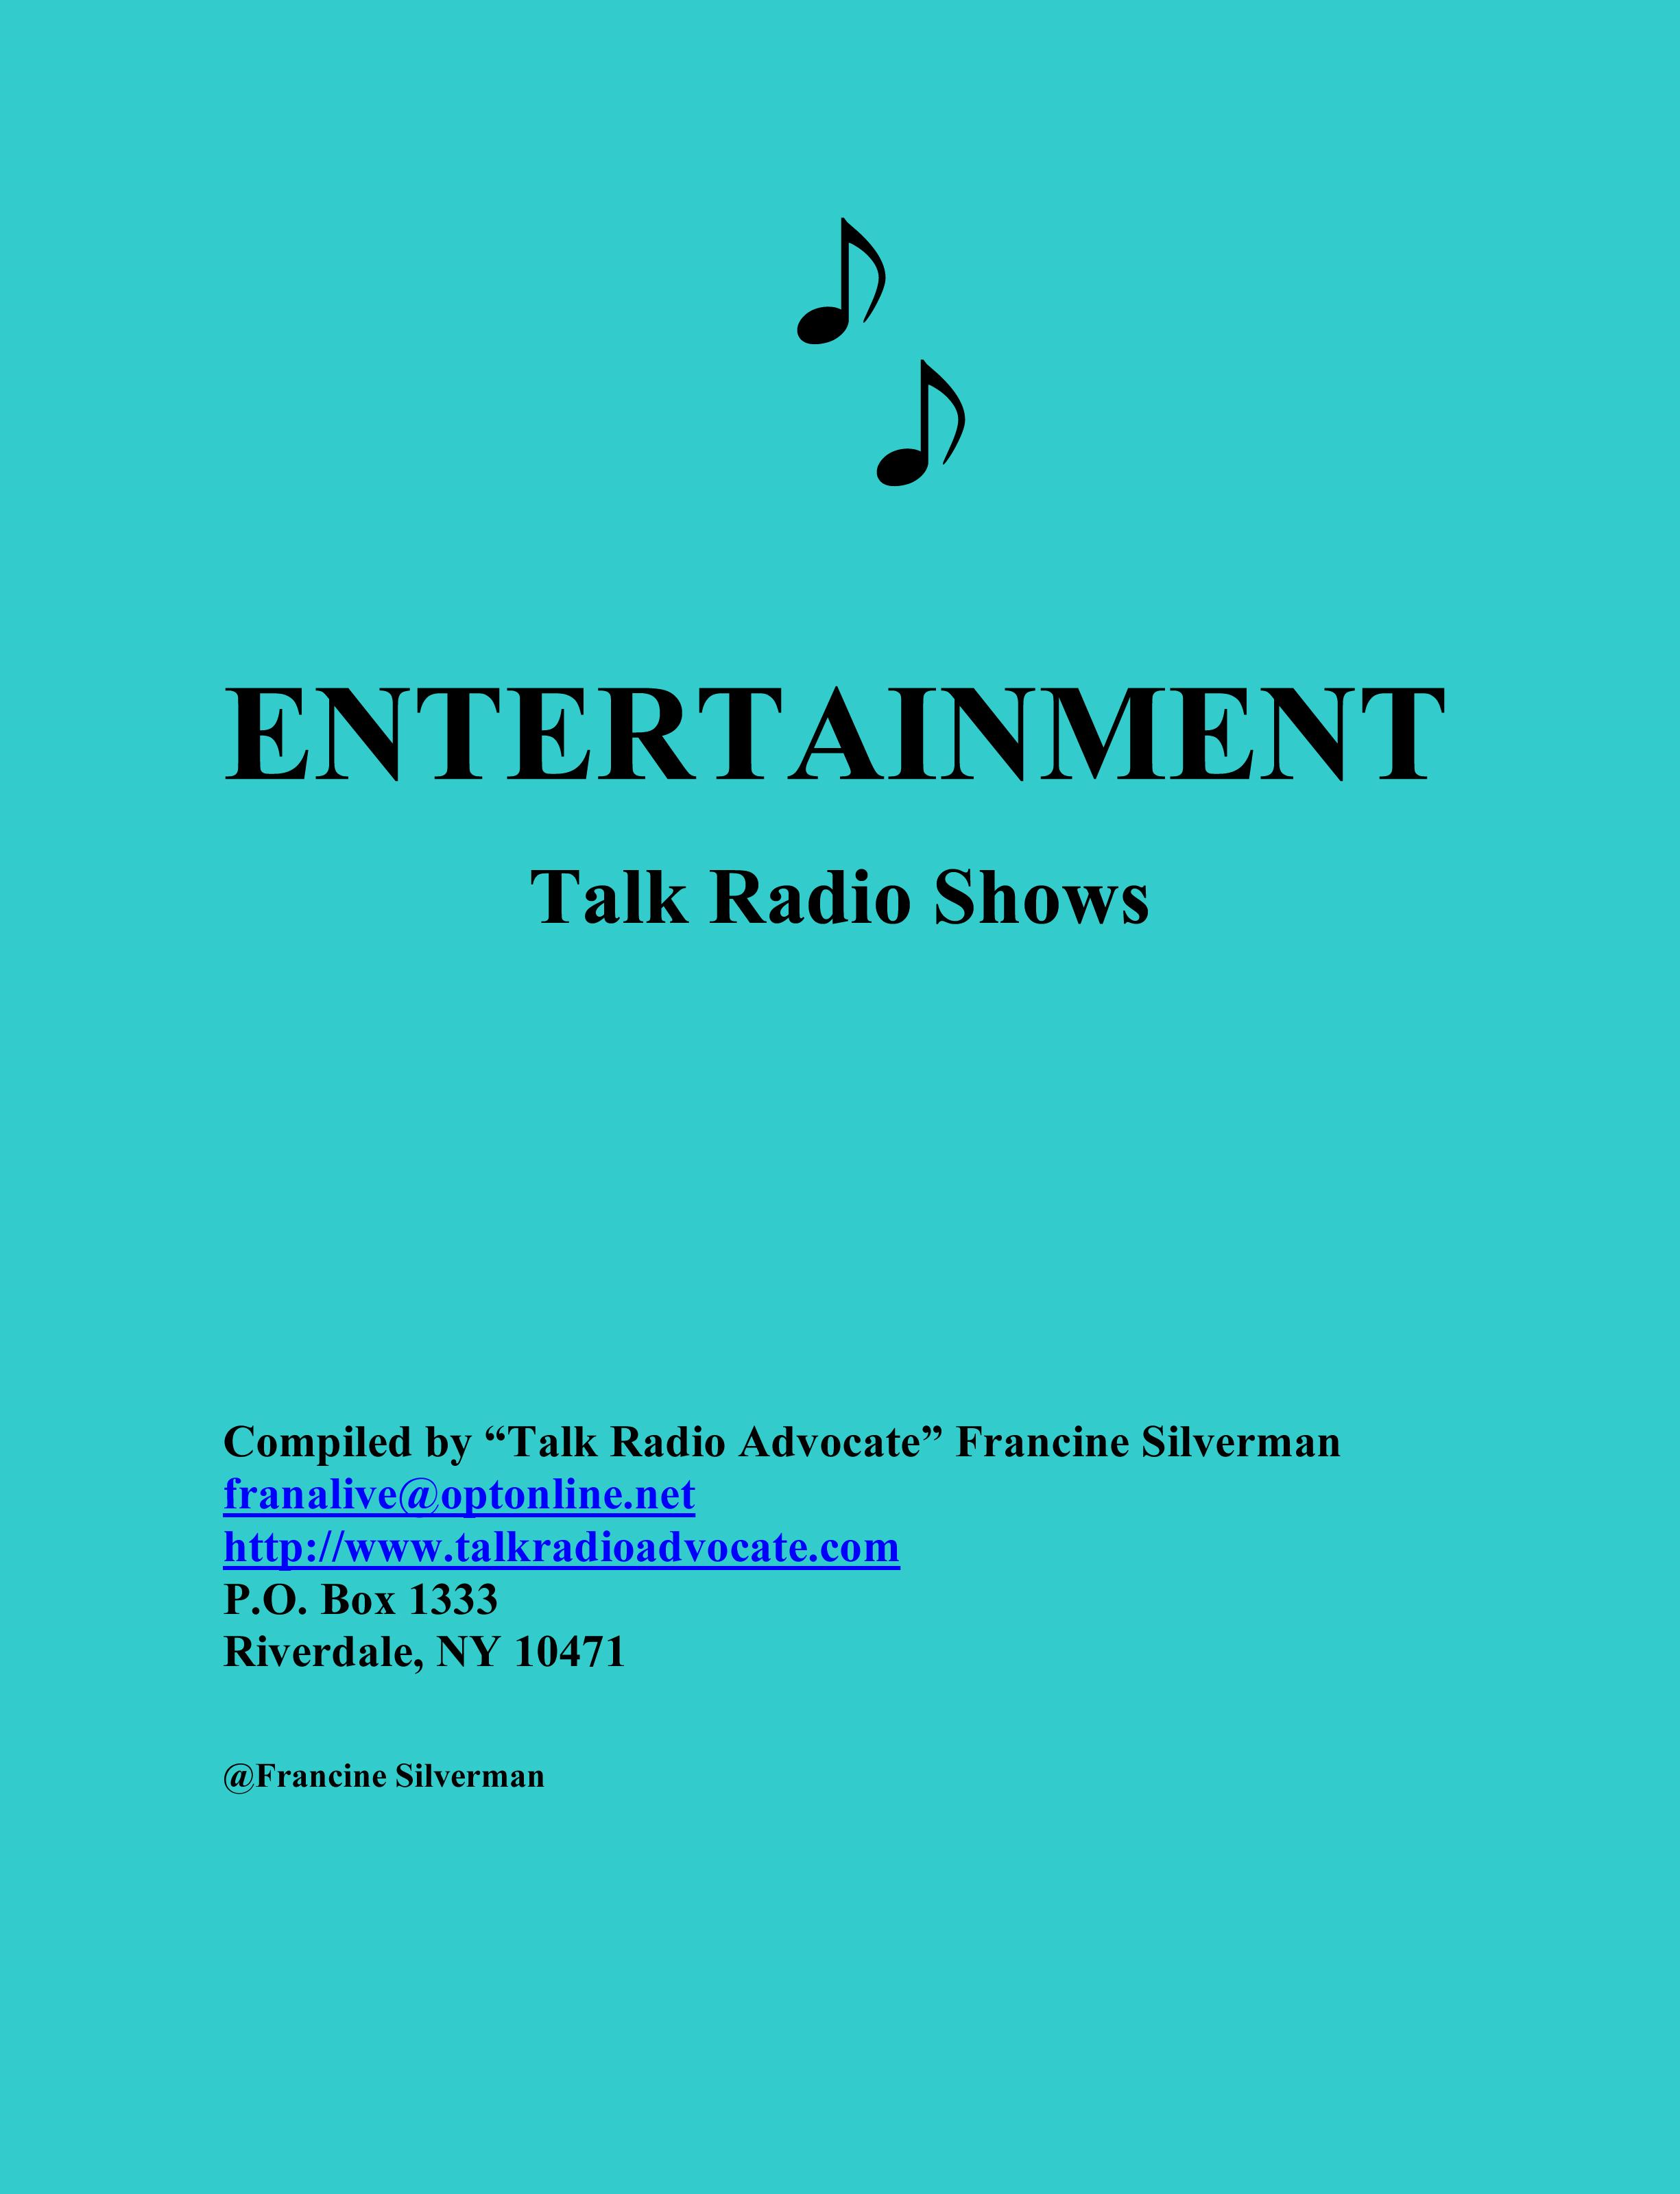 download directory of entertainment talk radio shows book